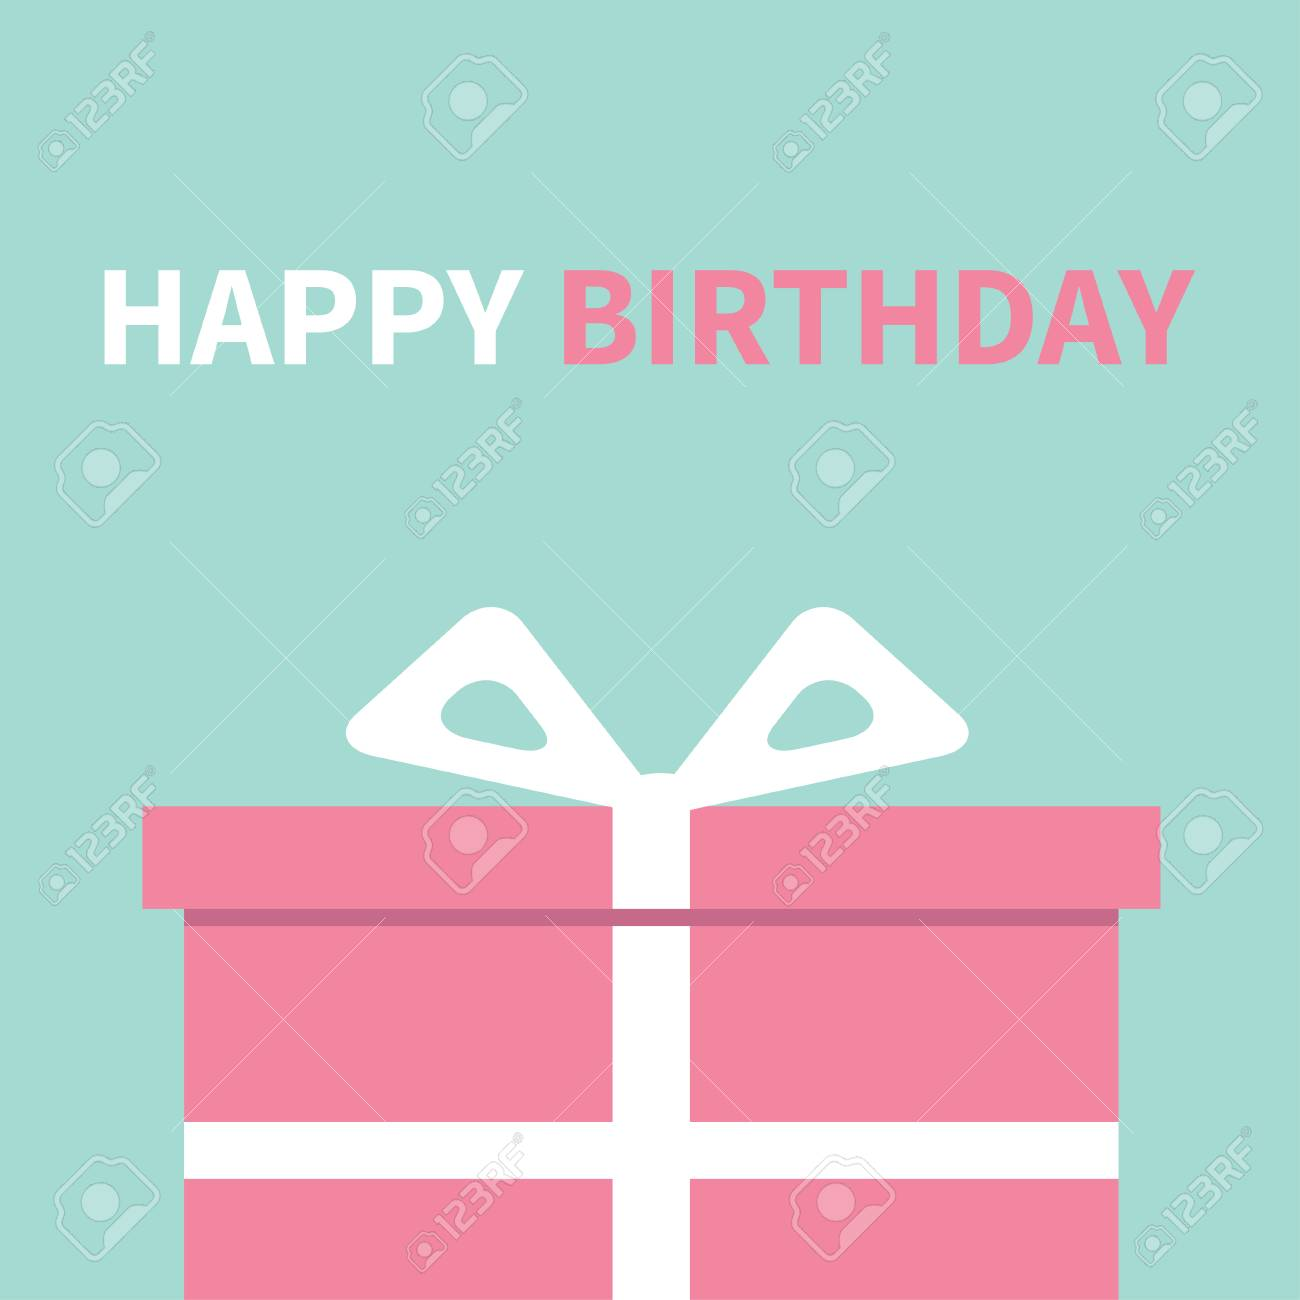 Gift box with ribbon and bow present giftbox happy birthday gift box with ribbon and bow present giftbox happy birthday greeting card blue m4hsunfo